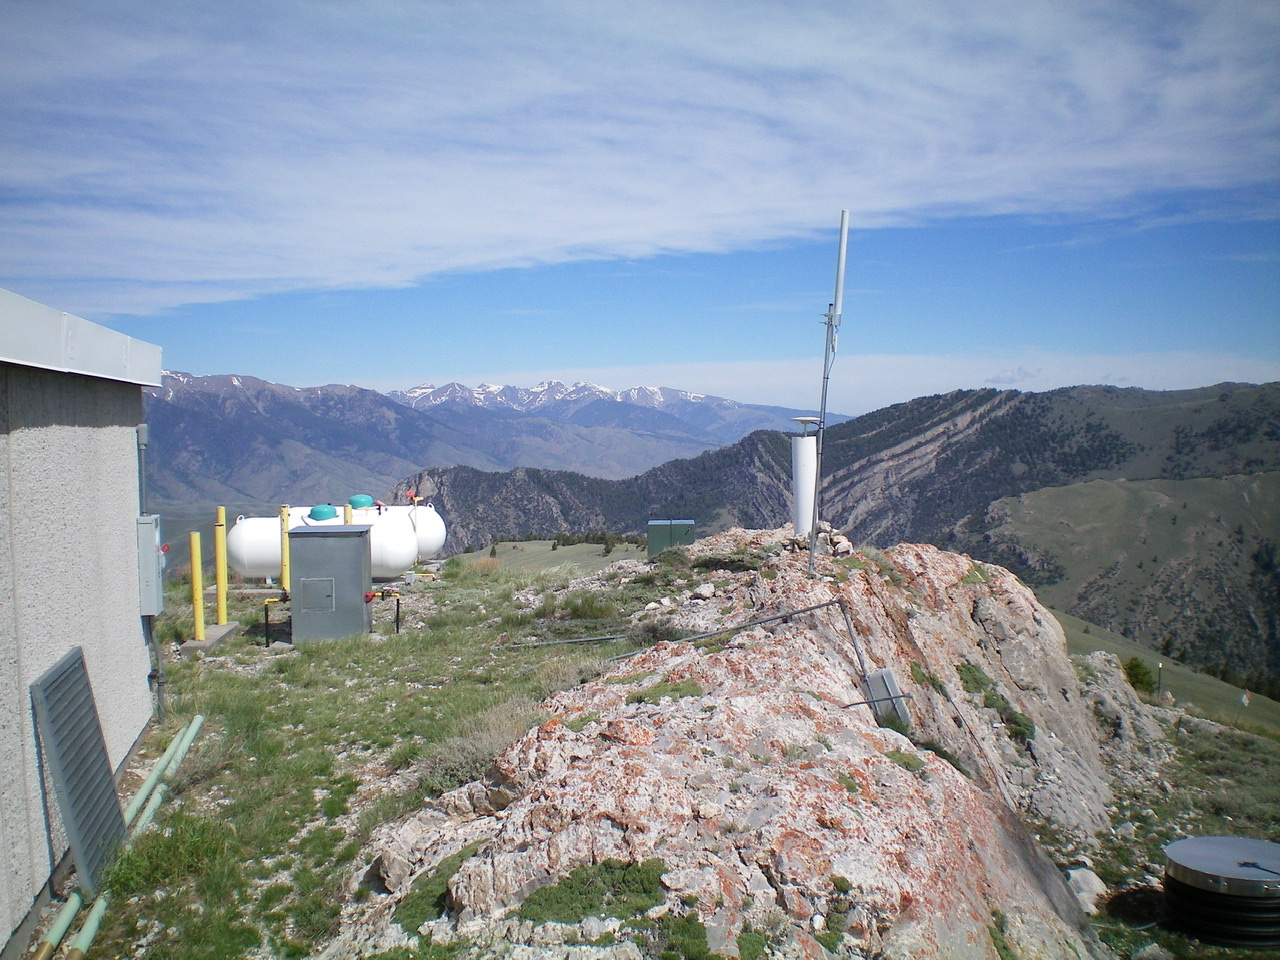 The massive summit block atop Howe Peak with the antenna installation planted firmly in it. Livingston Douglas Photo